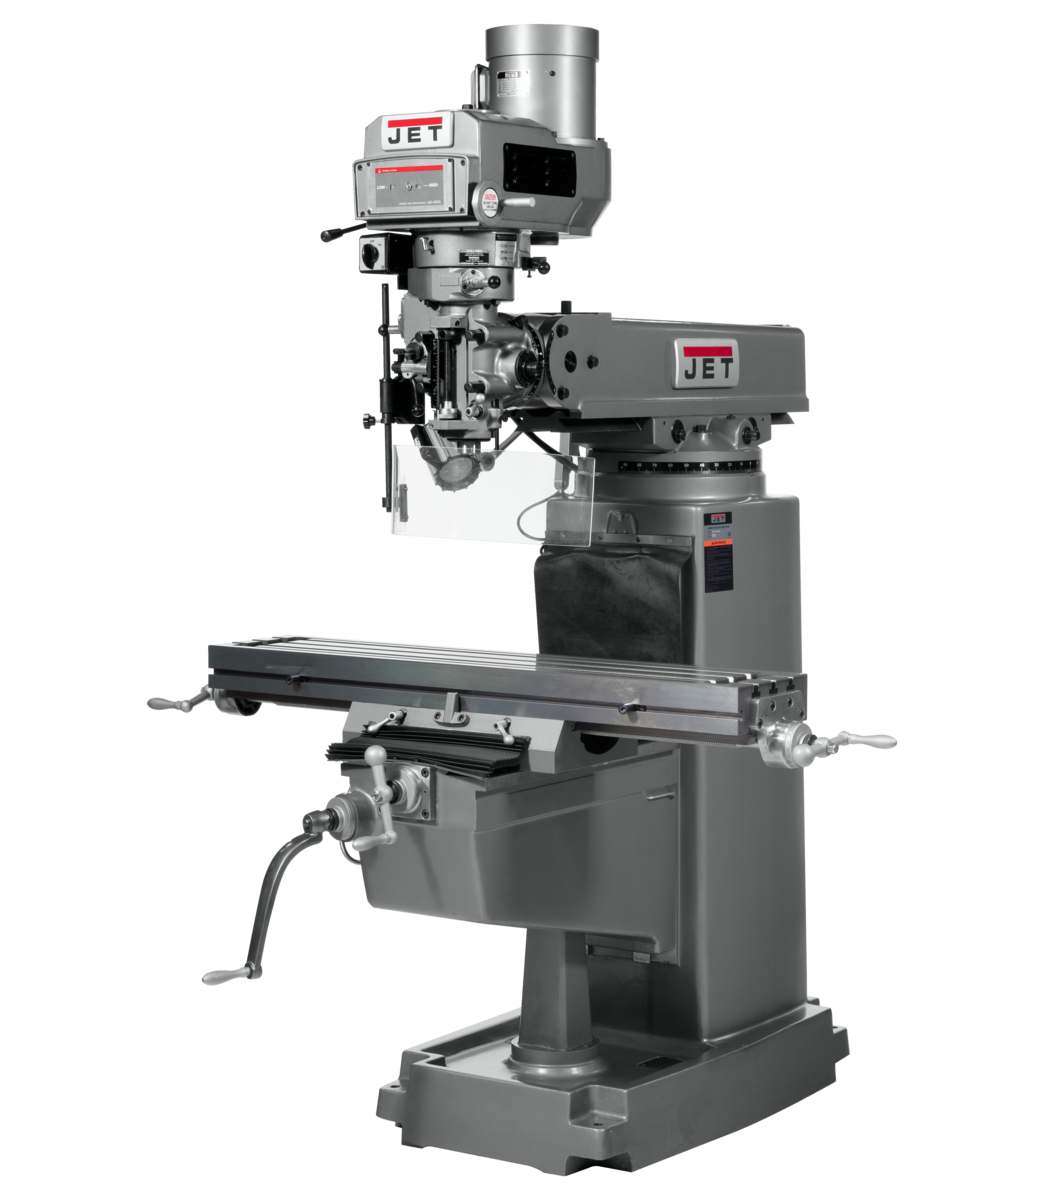 JTM-1050VS2 Mill With ACU-RITE 203 DRO With X, Y and Z-Axis Powerfeeds